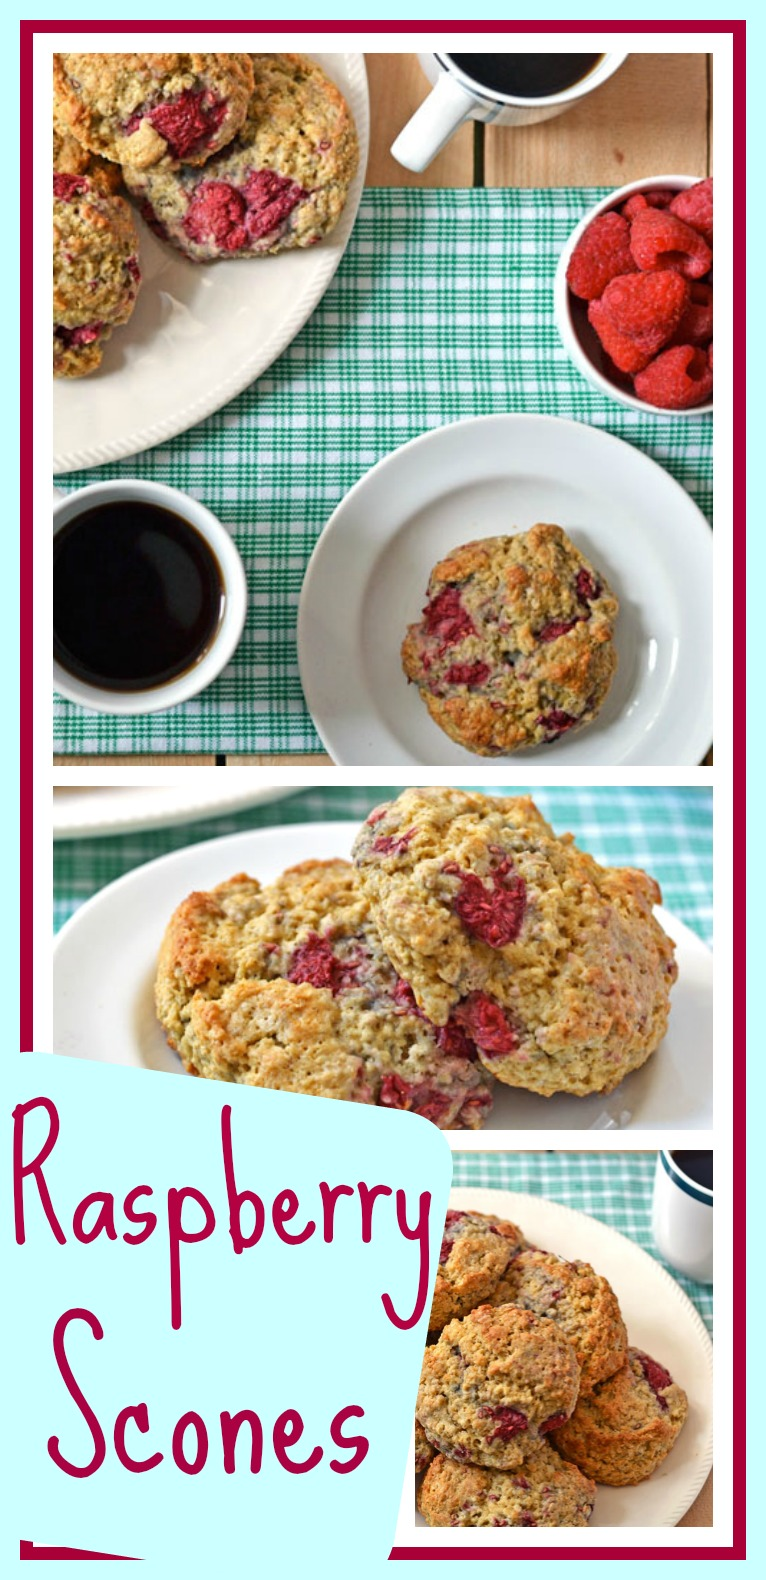 Raspberry Scones // Well-Plated